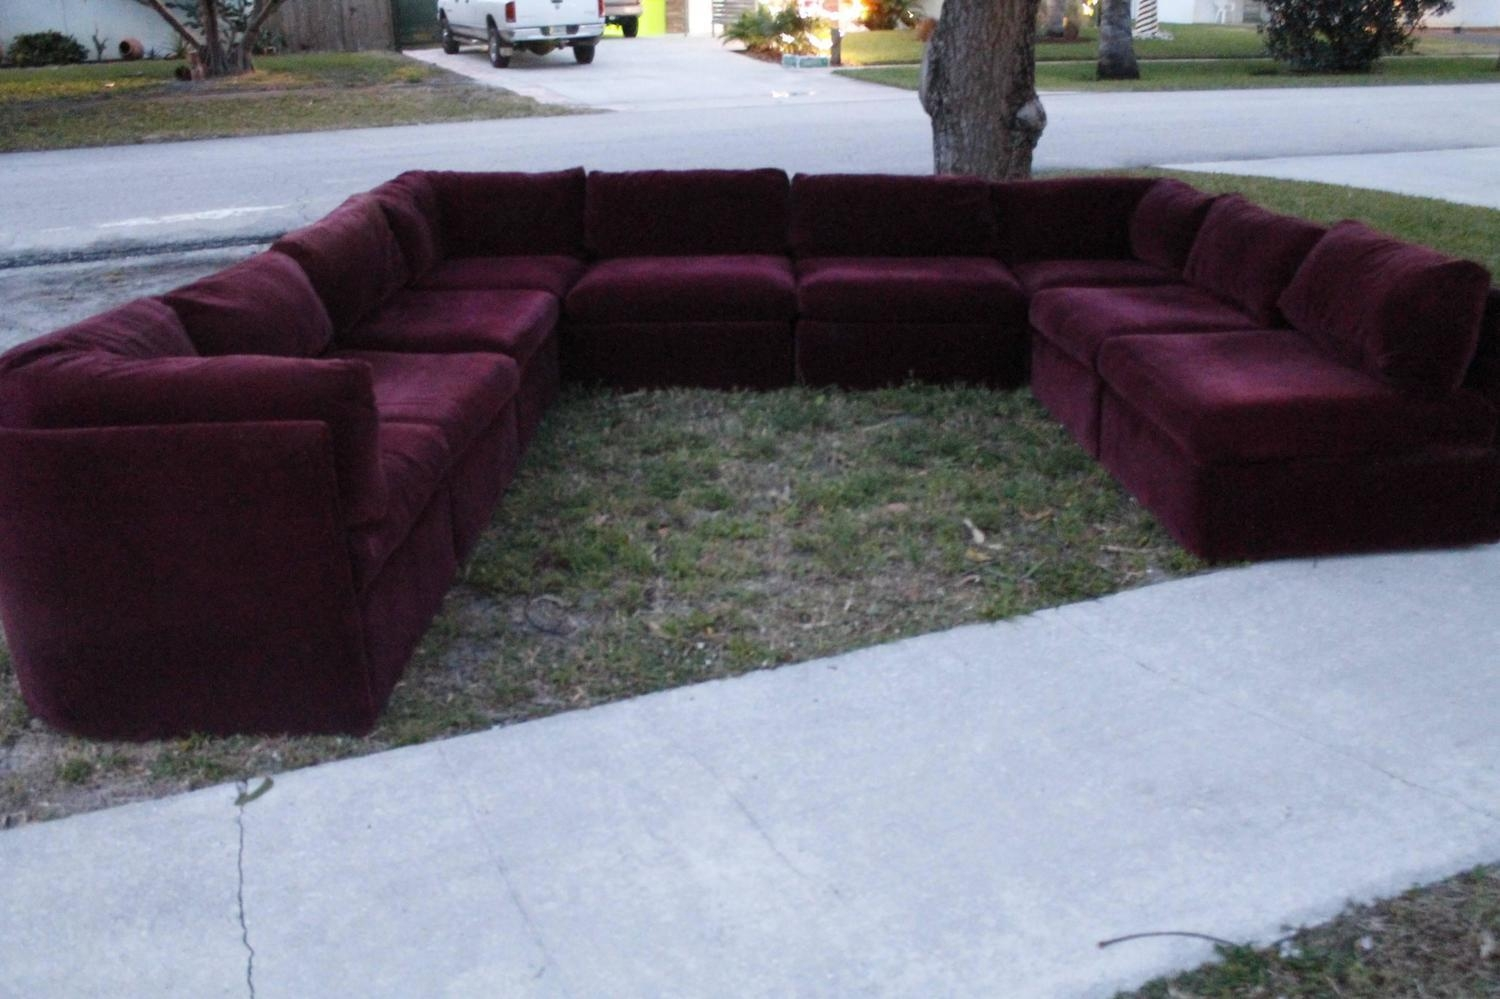 Vintage Milo Baughman Thayer Coggin 9 Piece Sectional Sofa In Burgundy Sectional Sofas (View 10 of 20)